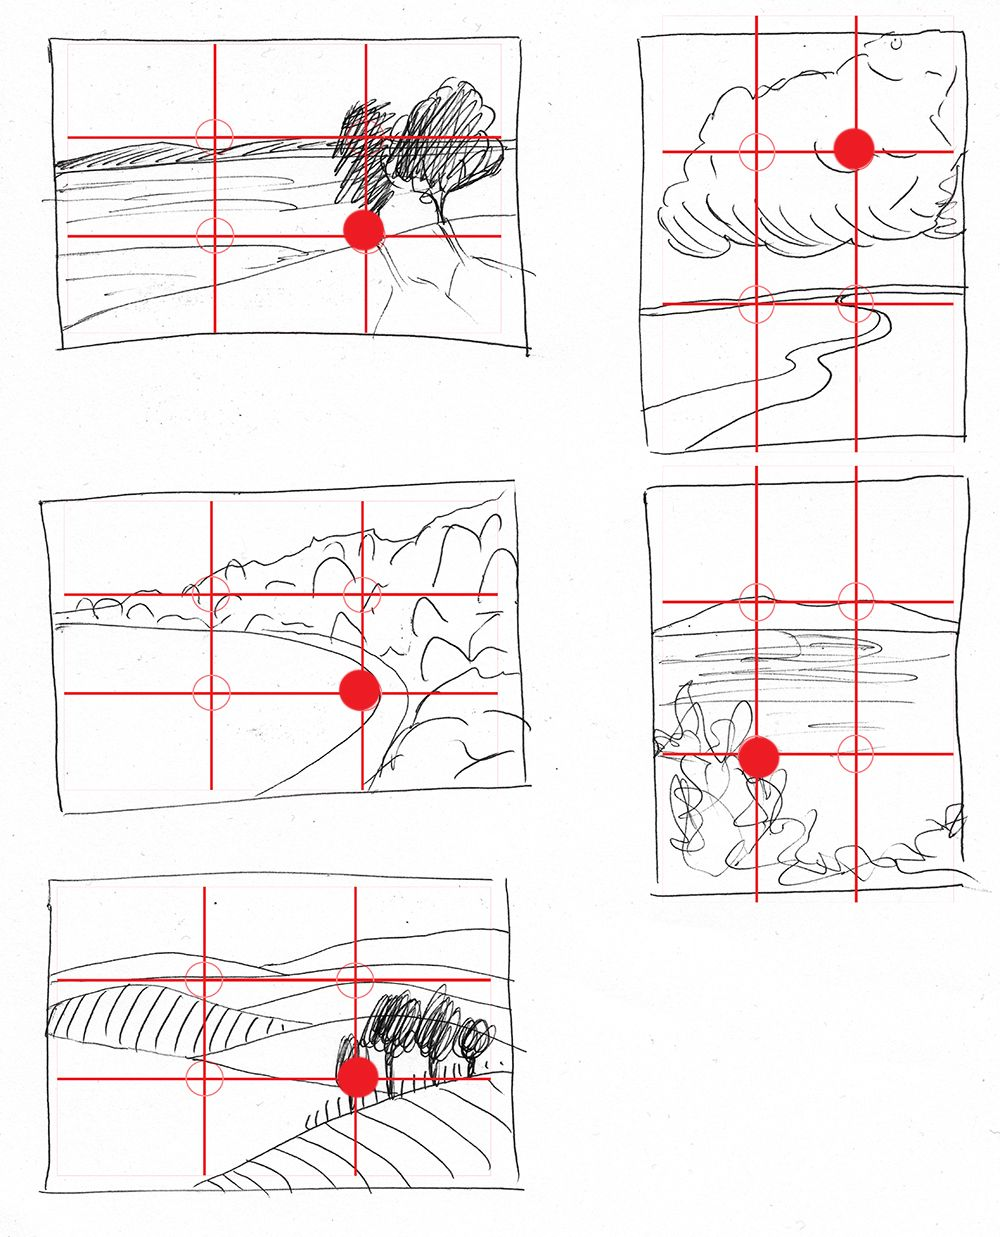 image freeuse stock Rule of thirds landscape. Drawing technique composition